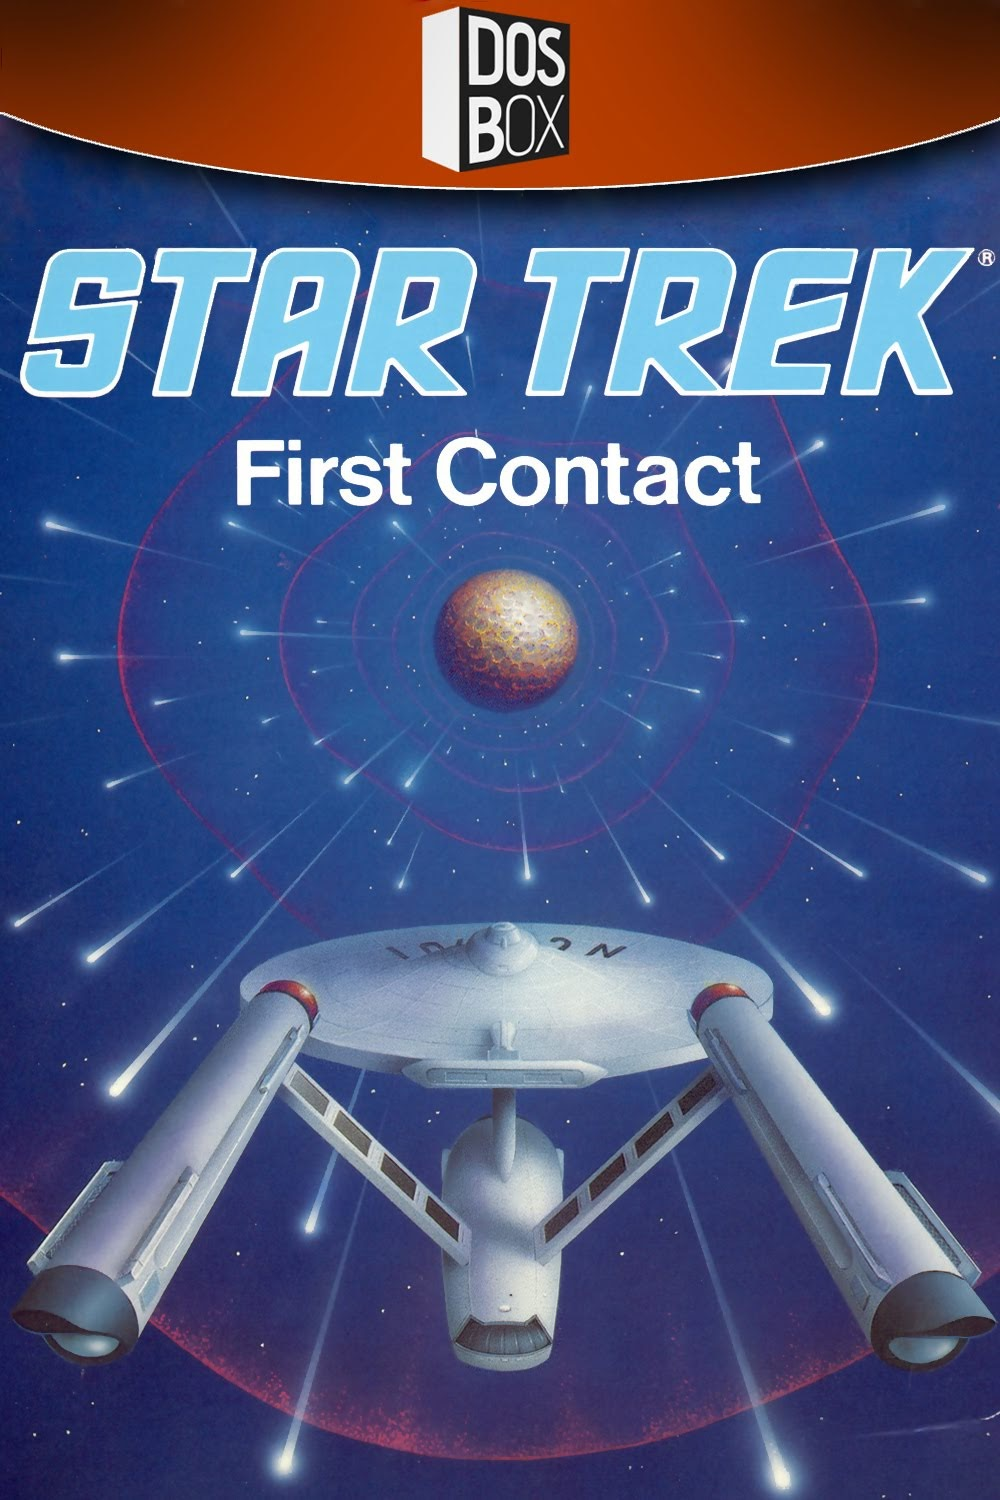 https://collectionchamber.blogspot.com/p/star-trek-first-contact.html